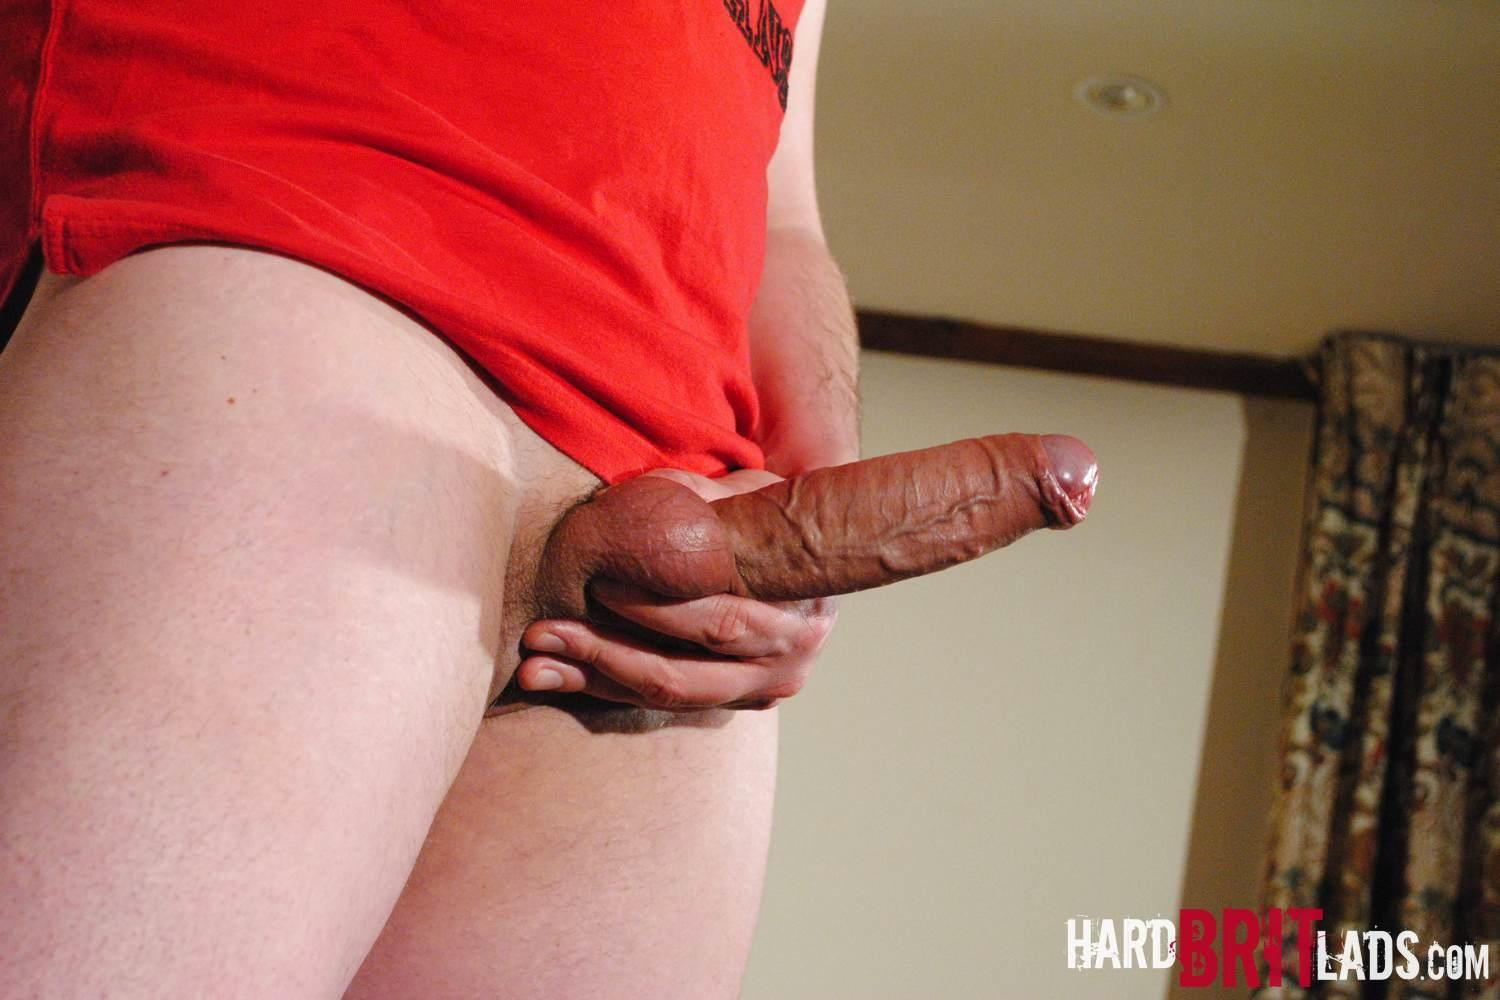 Hard-Brit-Lads-Jon-Bull-British-Skinhead-With-A-Big-Thick-Uncut-Cock-Amateur-Gay-Porn-14 Straight British Skinhead Jerking His Big Thick Veiny Uncut Cock